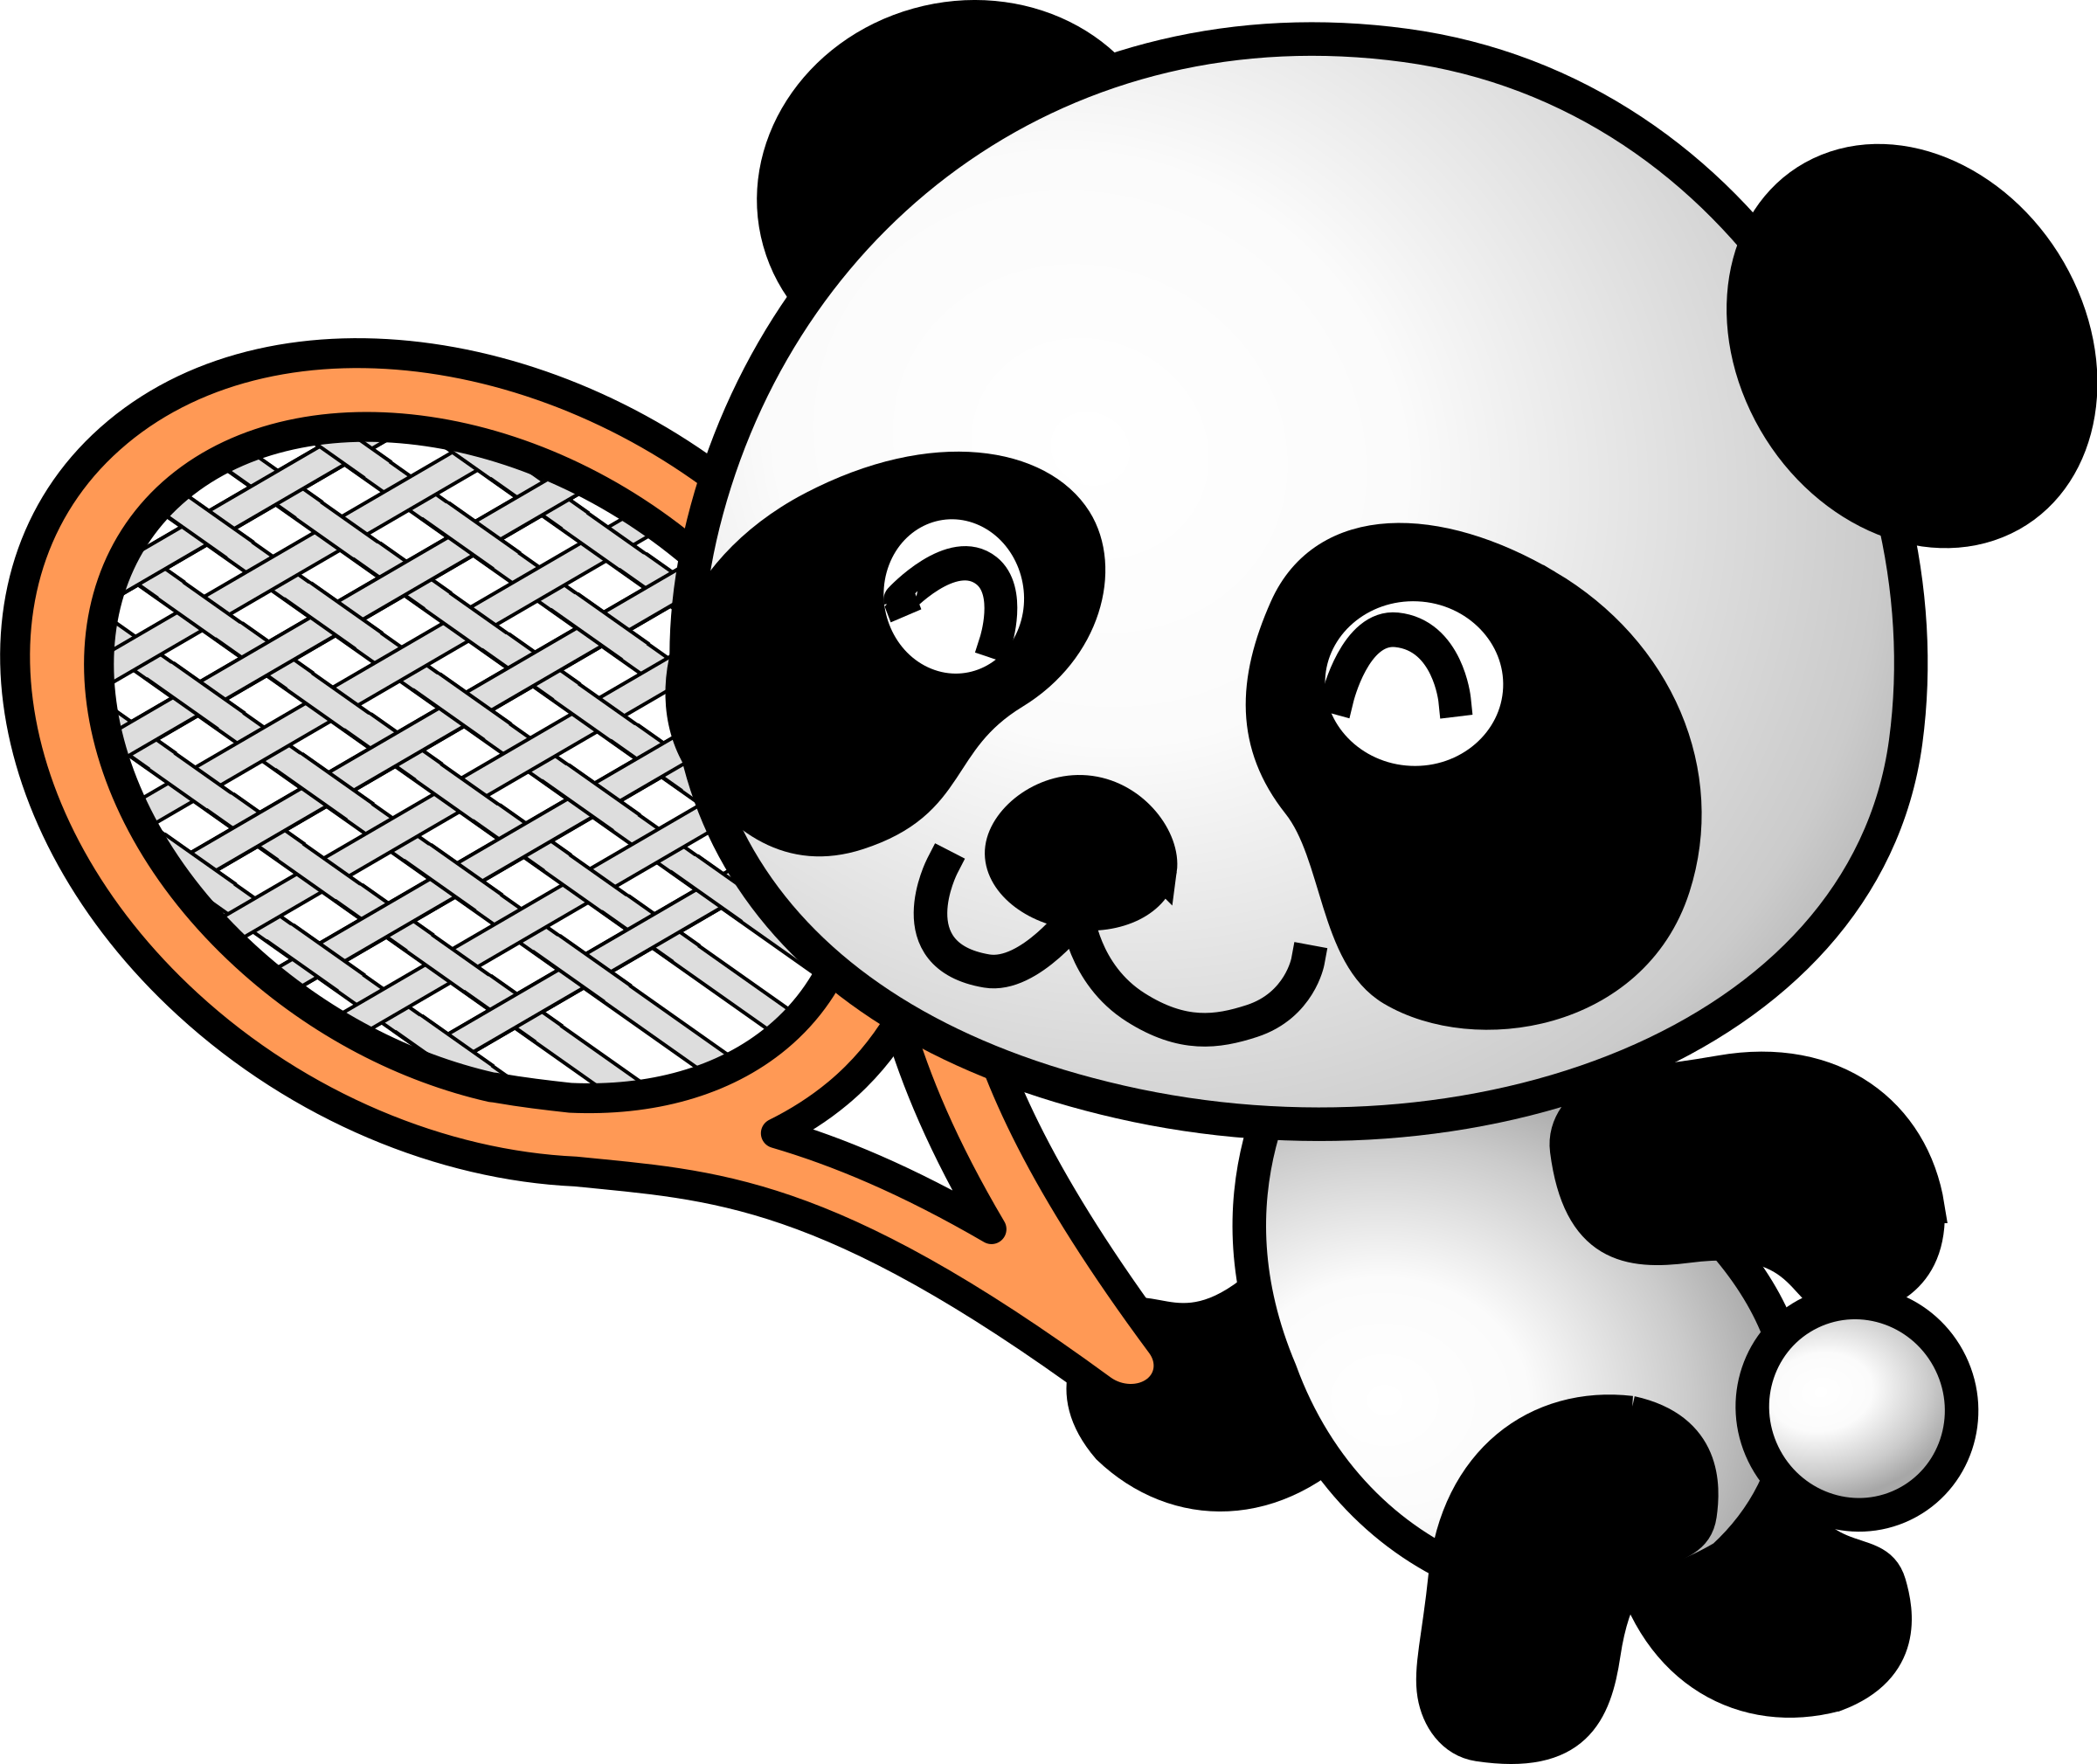 tennis panda by shu